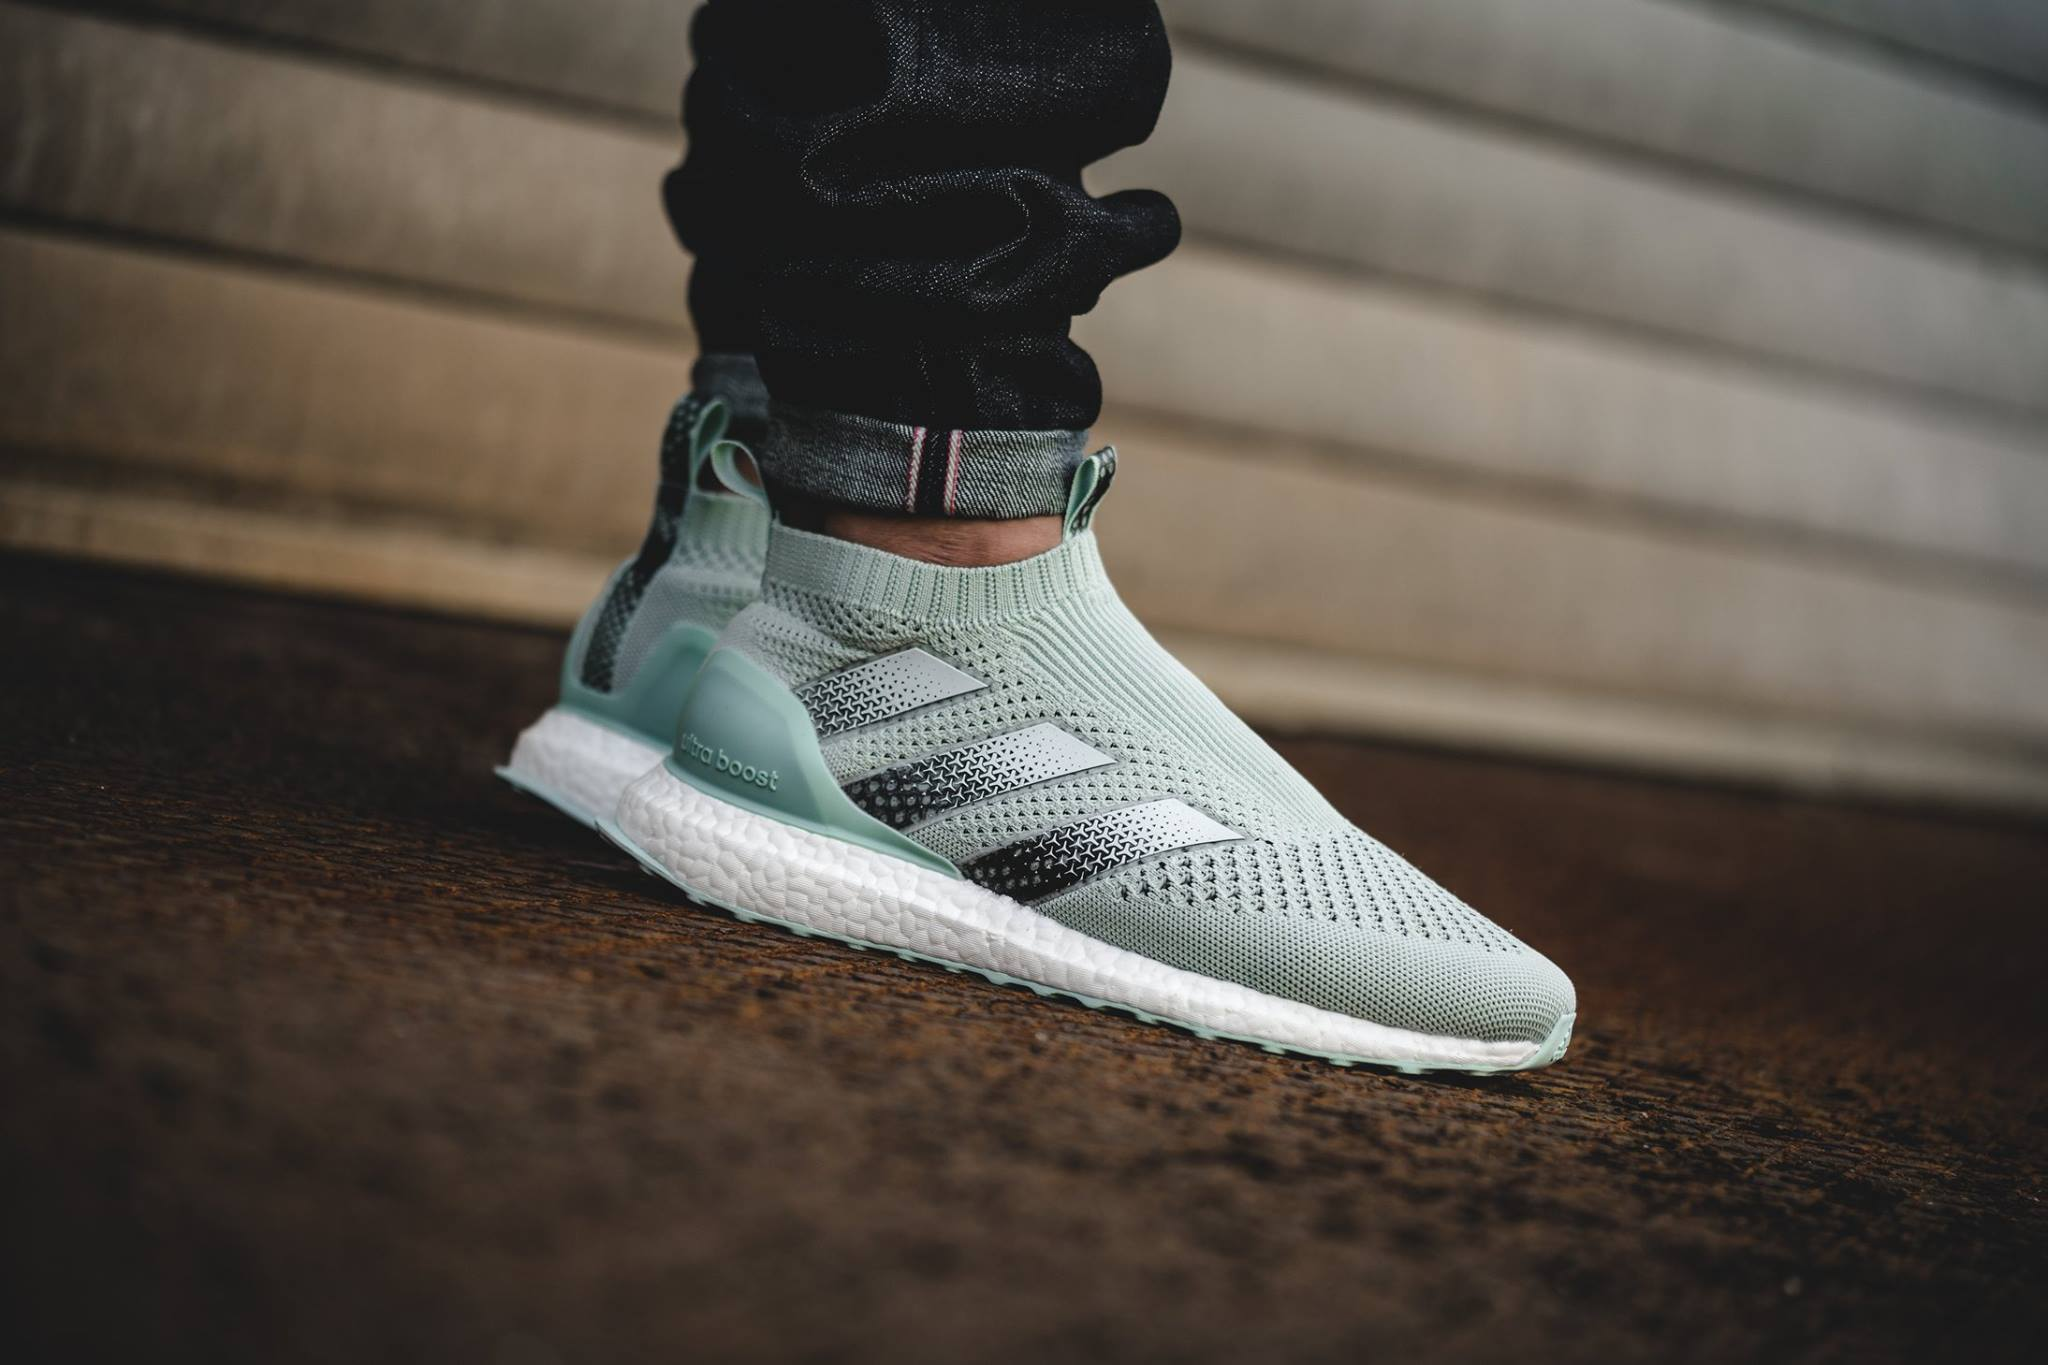 Adidas Ultra Boost Ace 16+